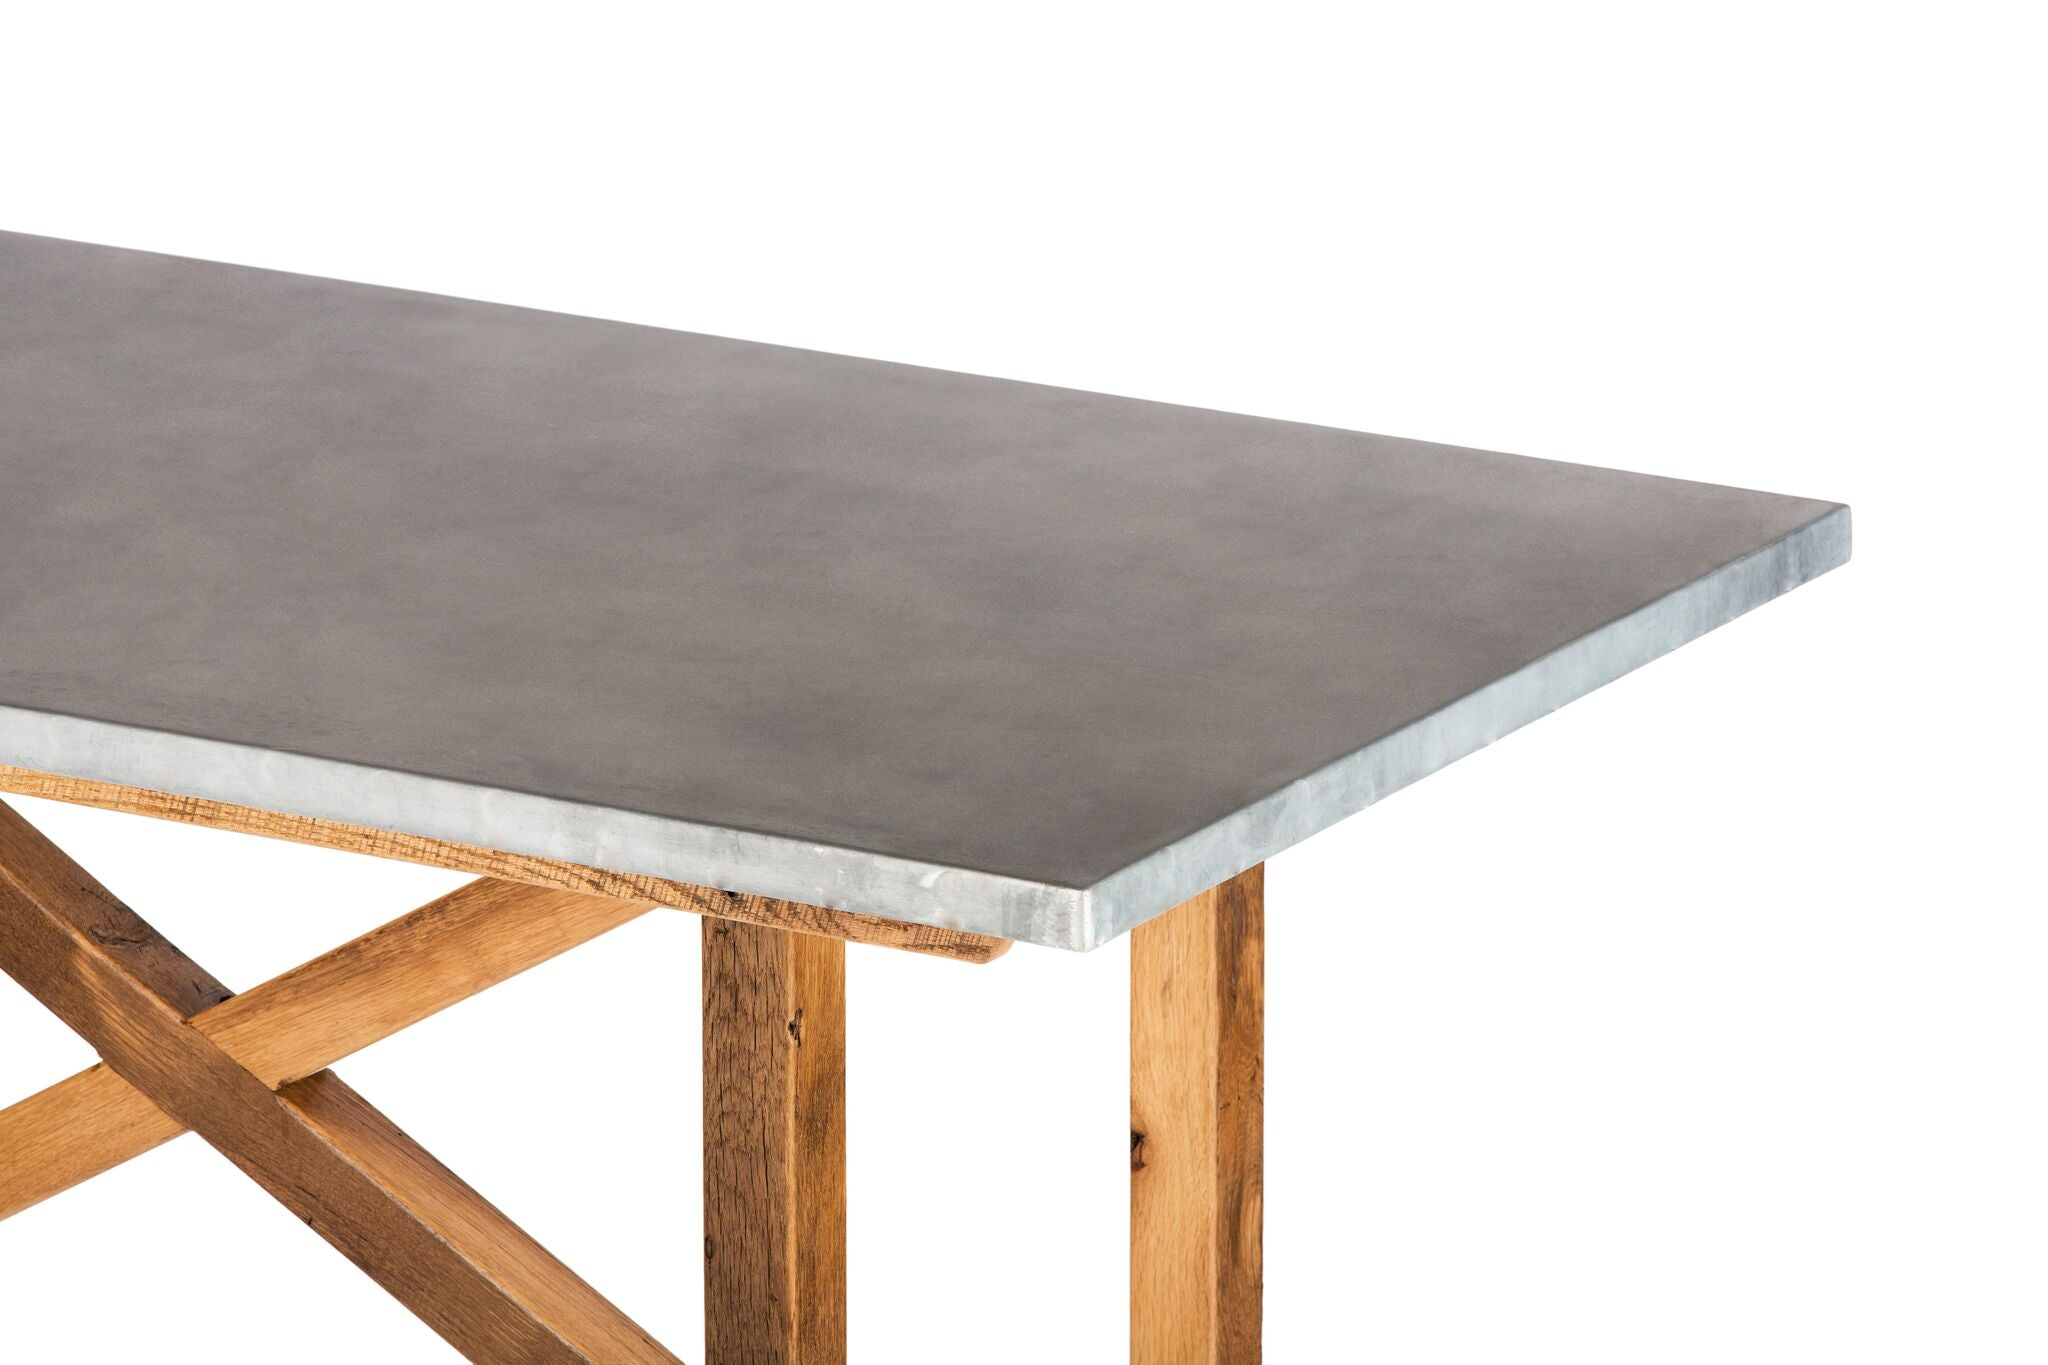 "Zinc Rectangular Table | Astor Table | BLACKENED BRONZE | Natural Black Walnut | CUSTOM SIZE 60""L 30""W 30""H 